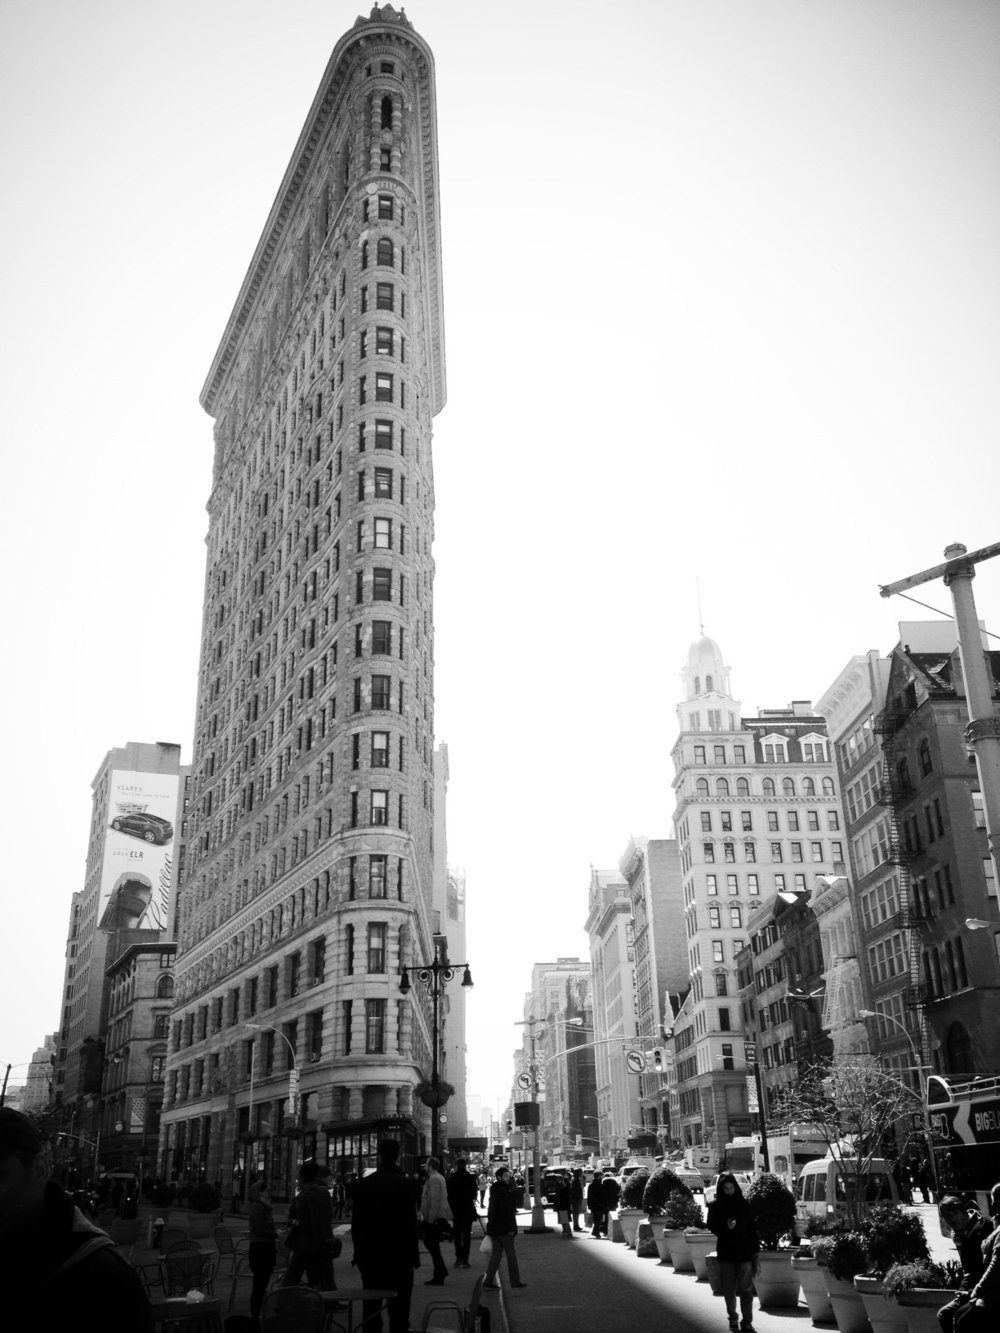 The Gallery is located in the busy neighborhood of Flatiron District on 5th Avenue between 19th & 20th Street.